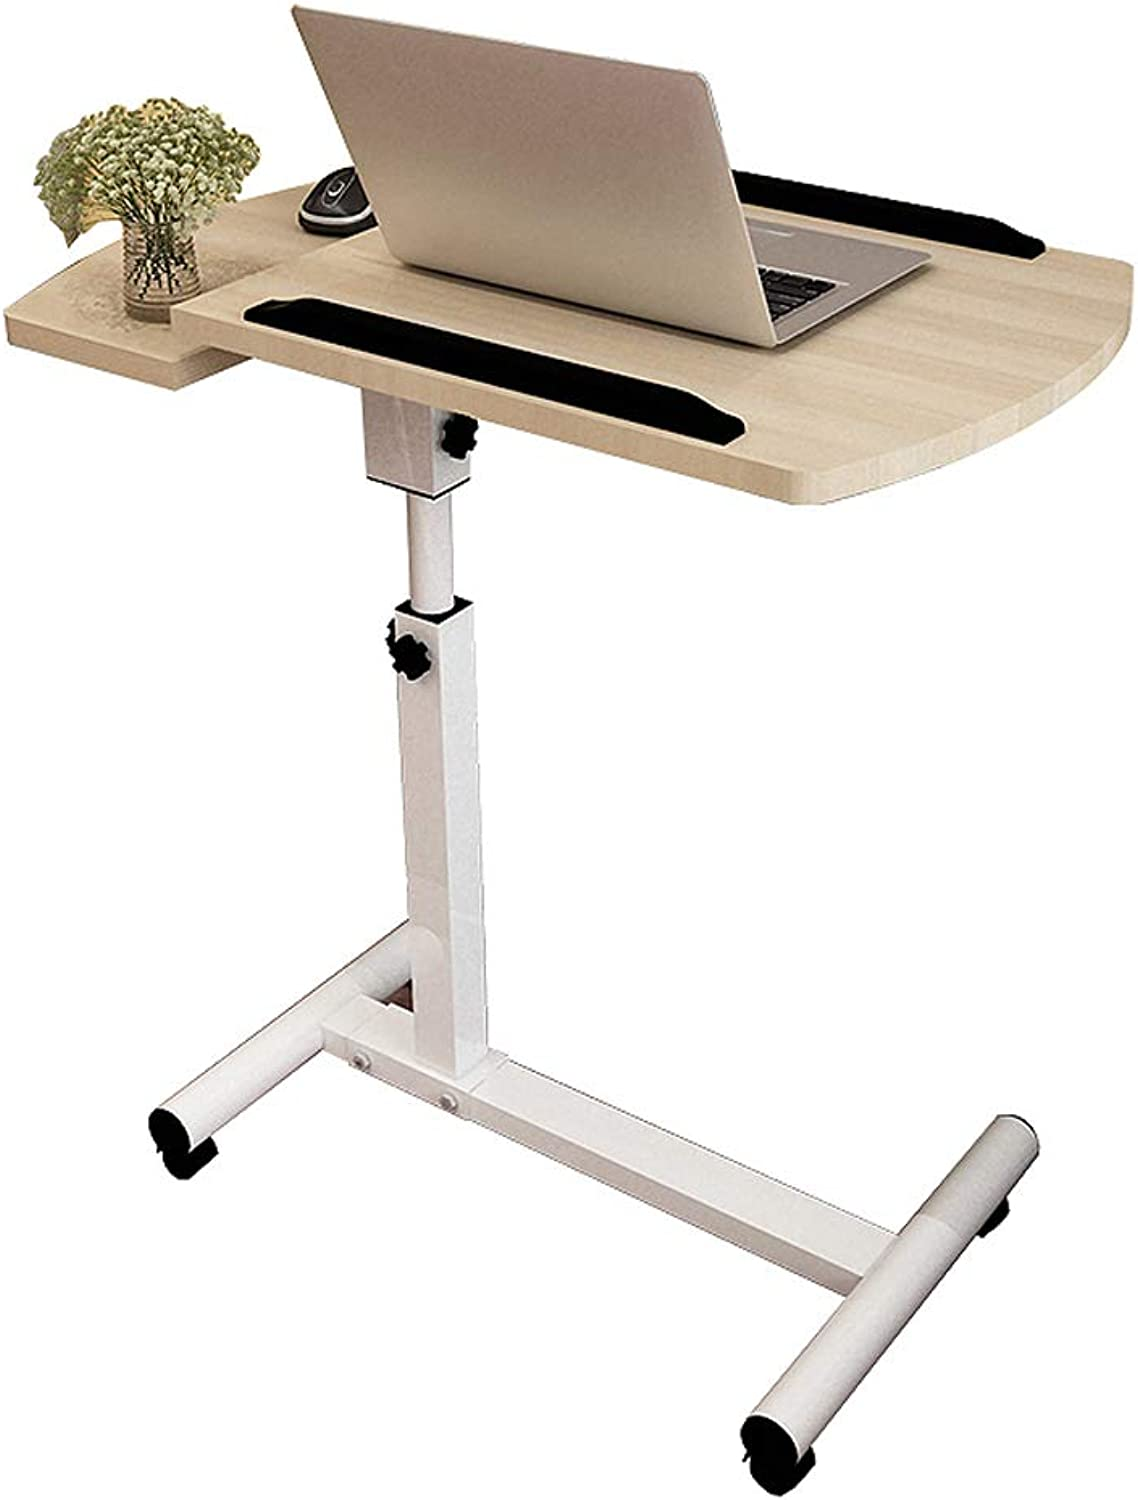 Computer Desk Laptop Desk Bed Learning Home Lift Folding Portable Moving Bed Side Table